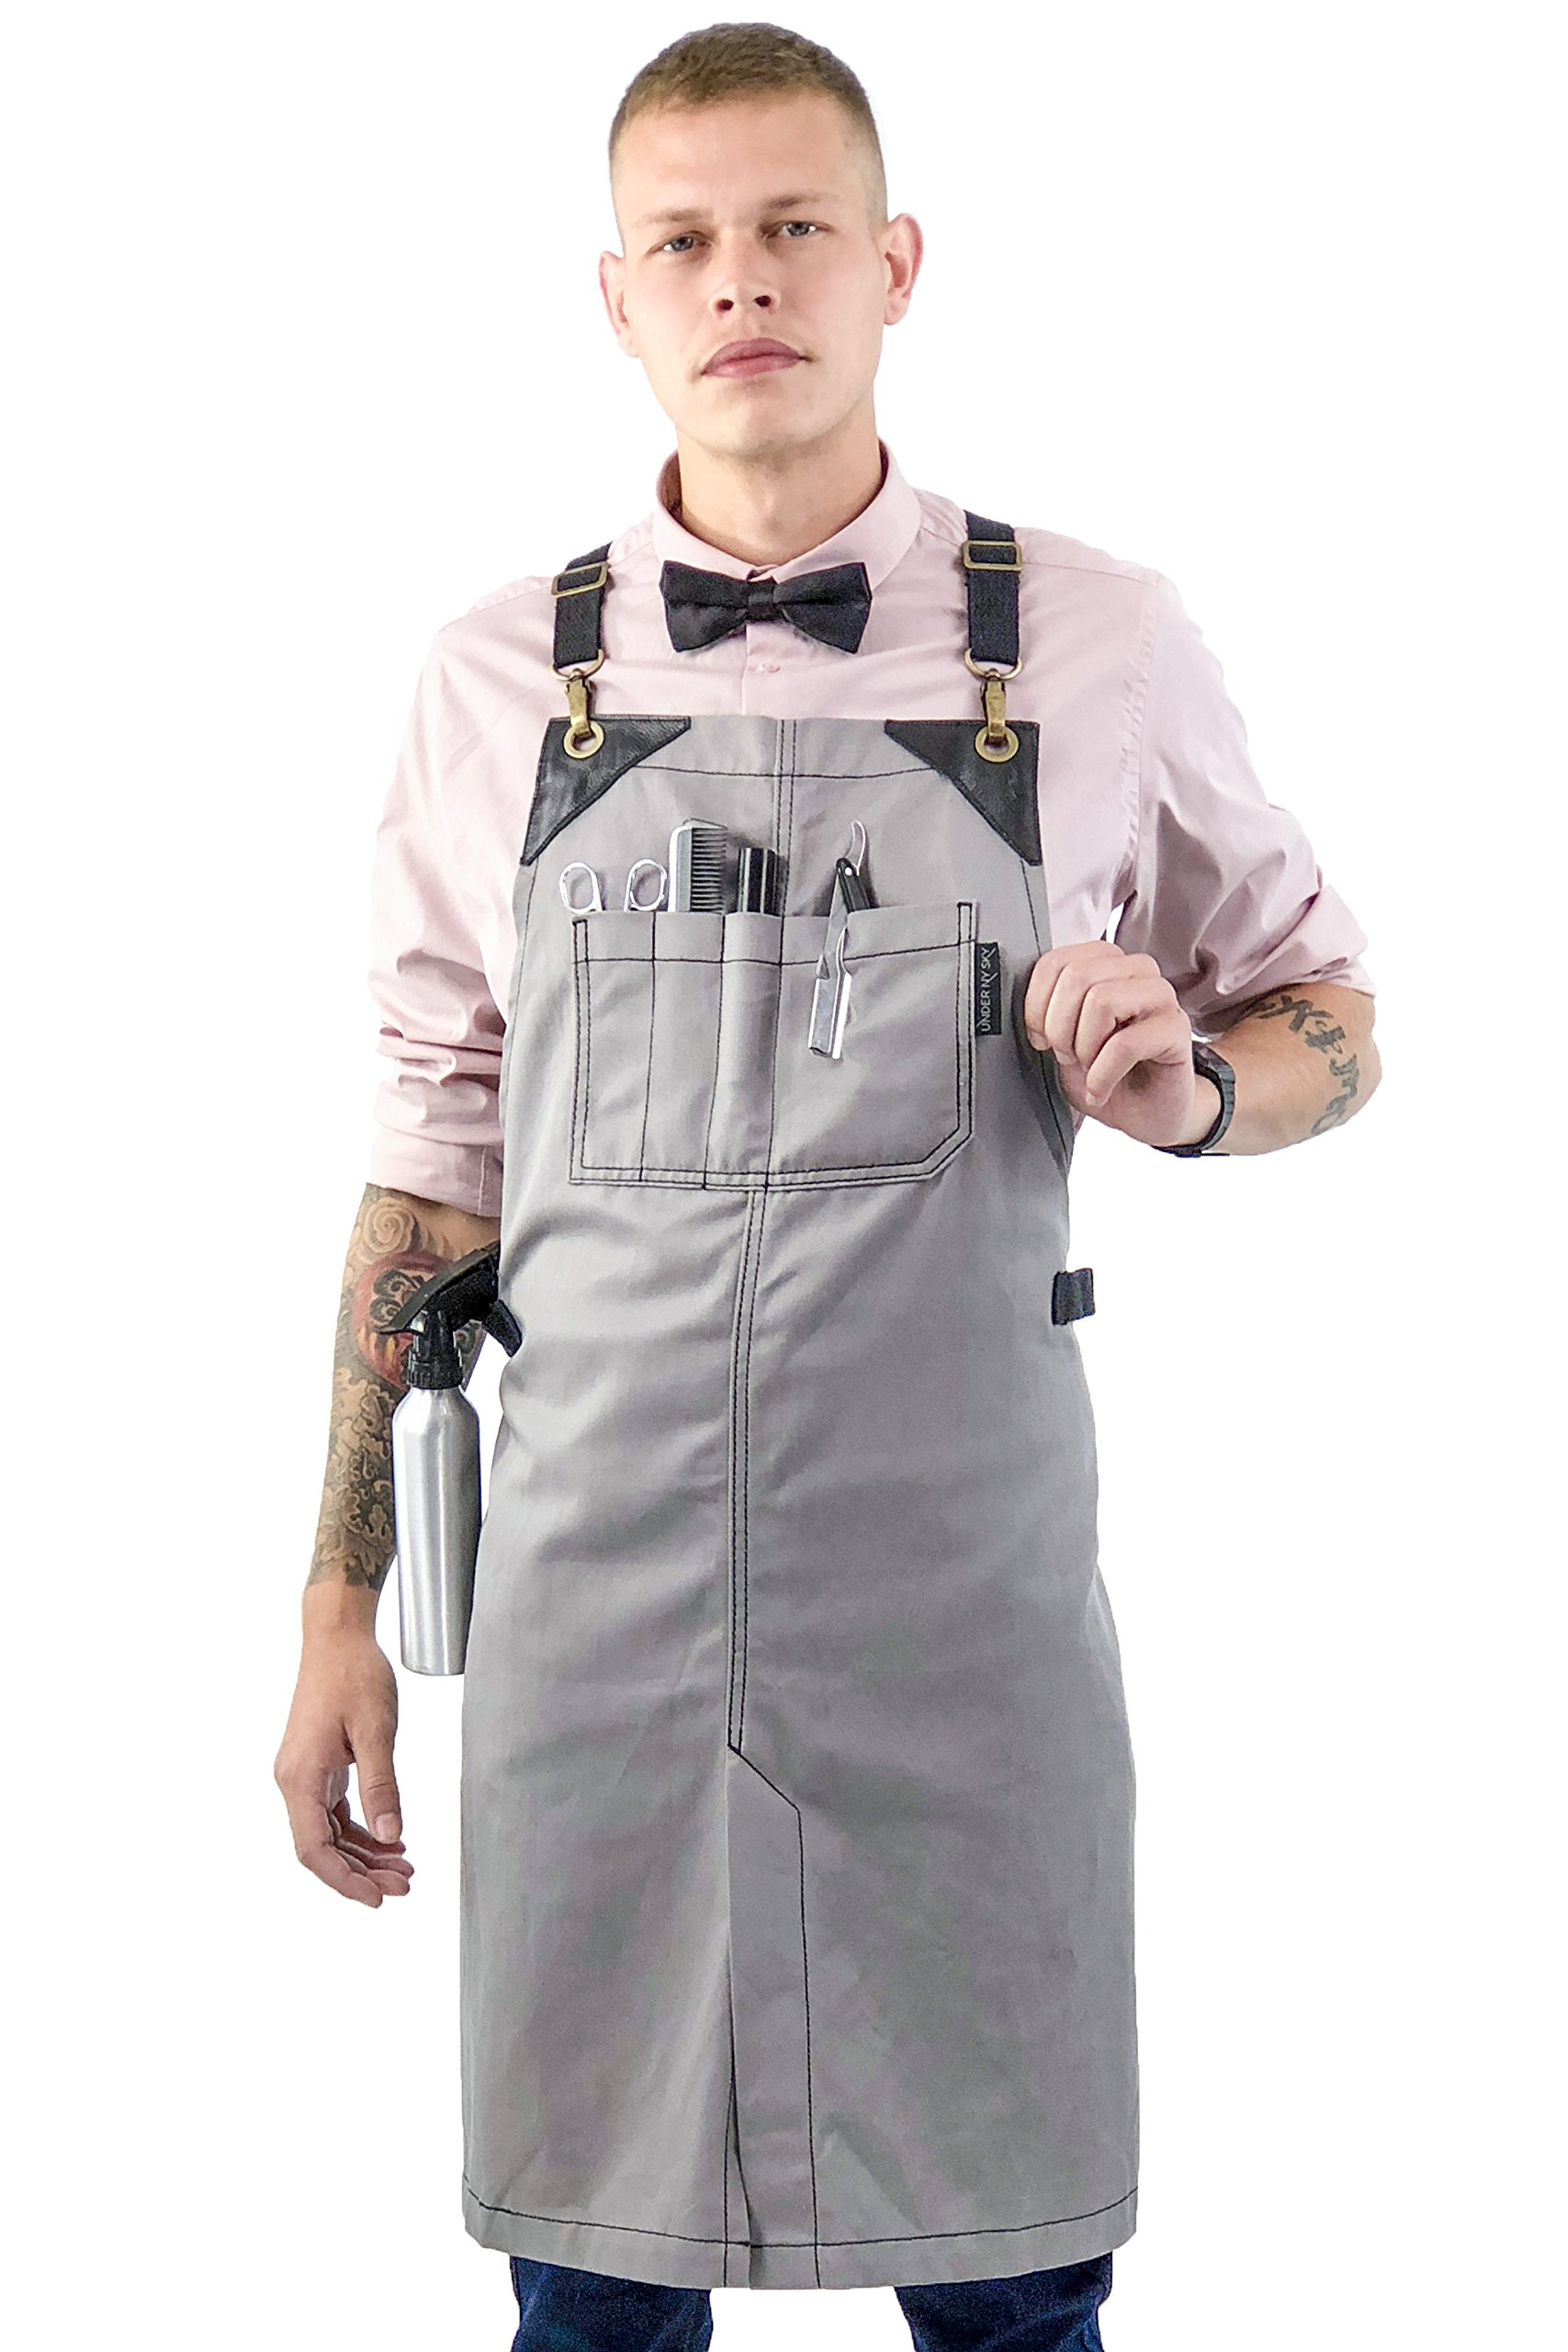 Under NY Sky Barber Moonstone Gray Apron – Cross-Back with Durable Waterproof and Oil Proof Twill, Leather Reinforcement, Split-Leg – Adjustable, Men and Women, Pro Tattoo, Stylist, Bartender Aprons